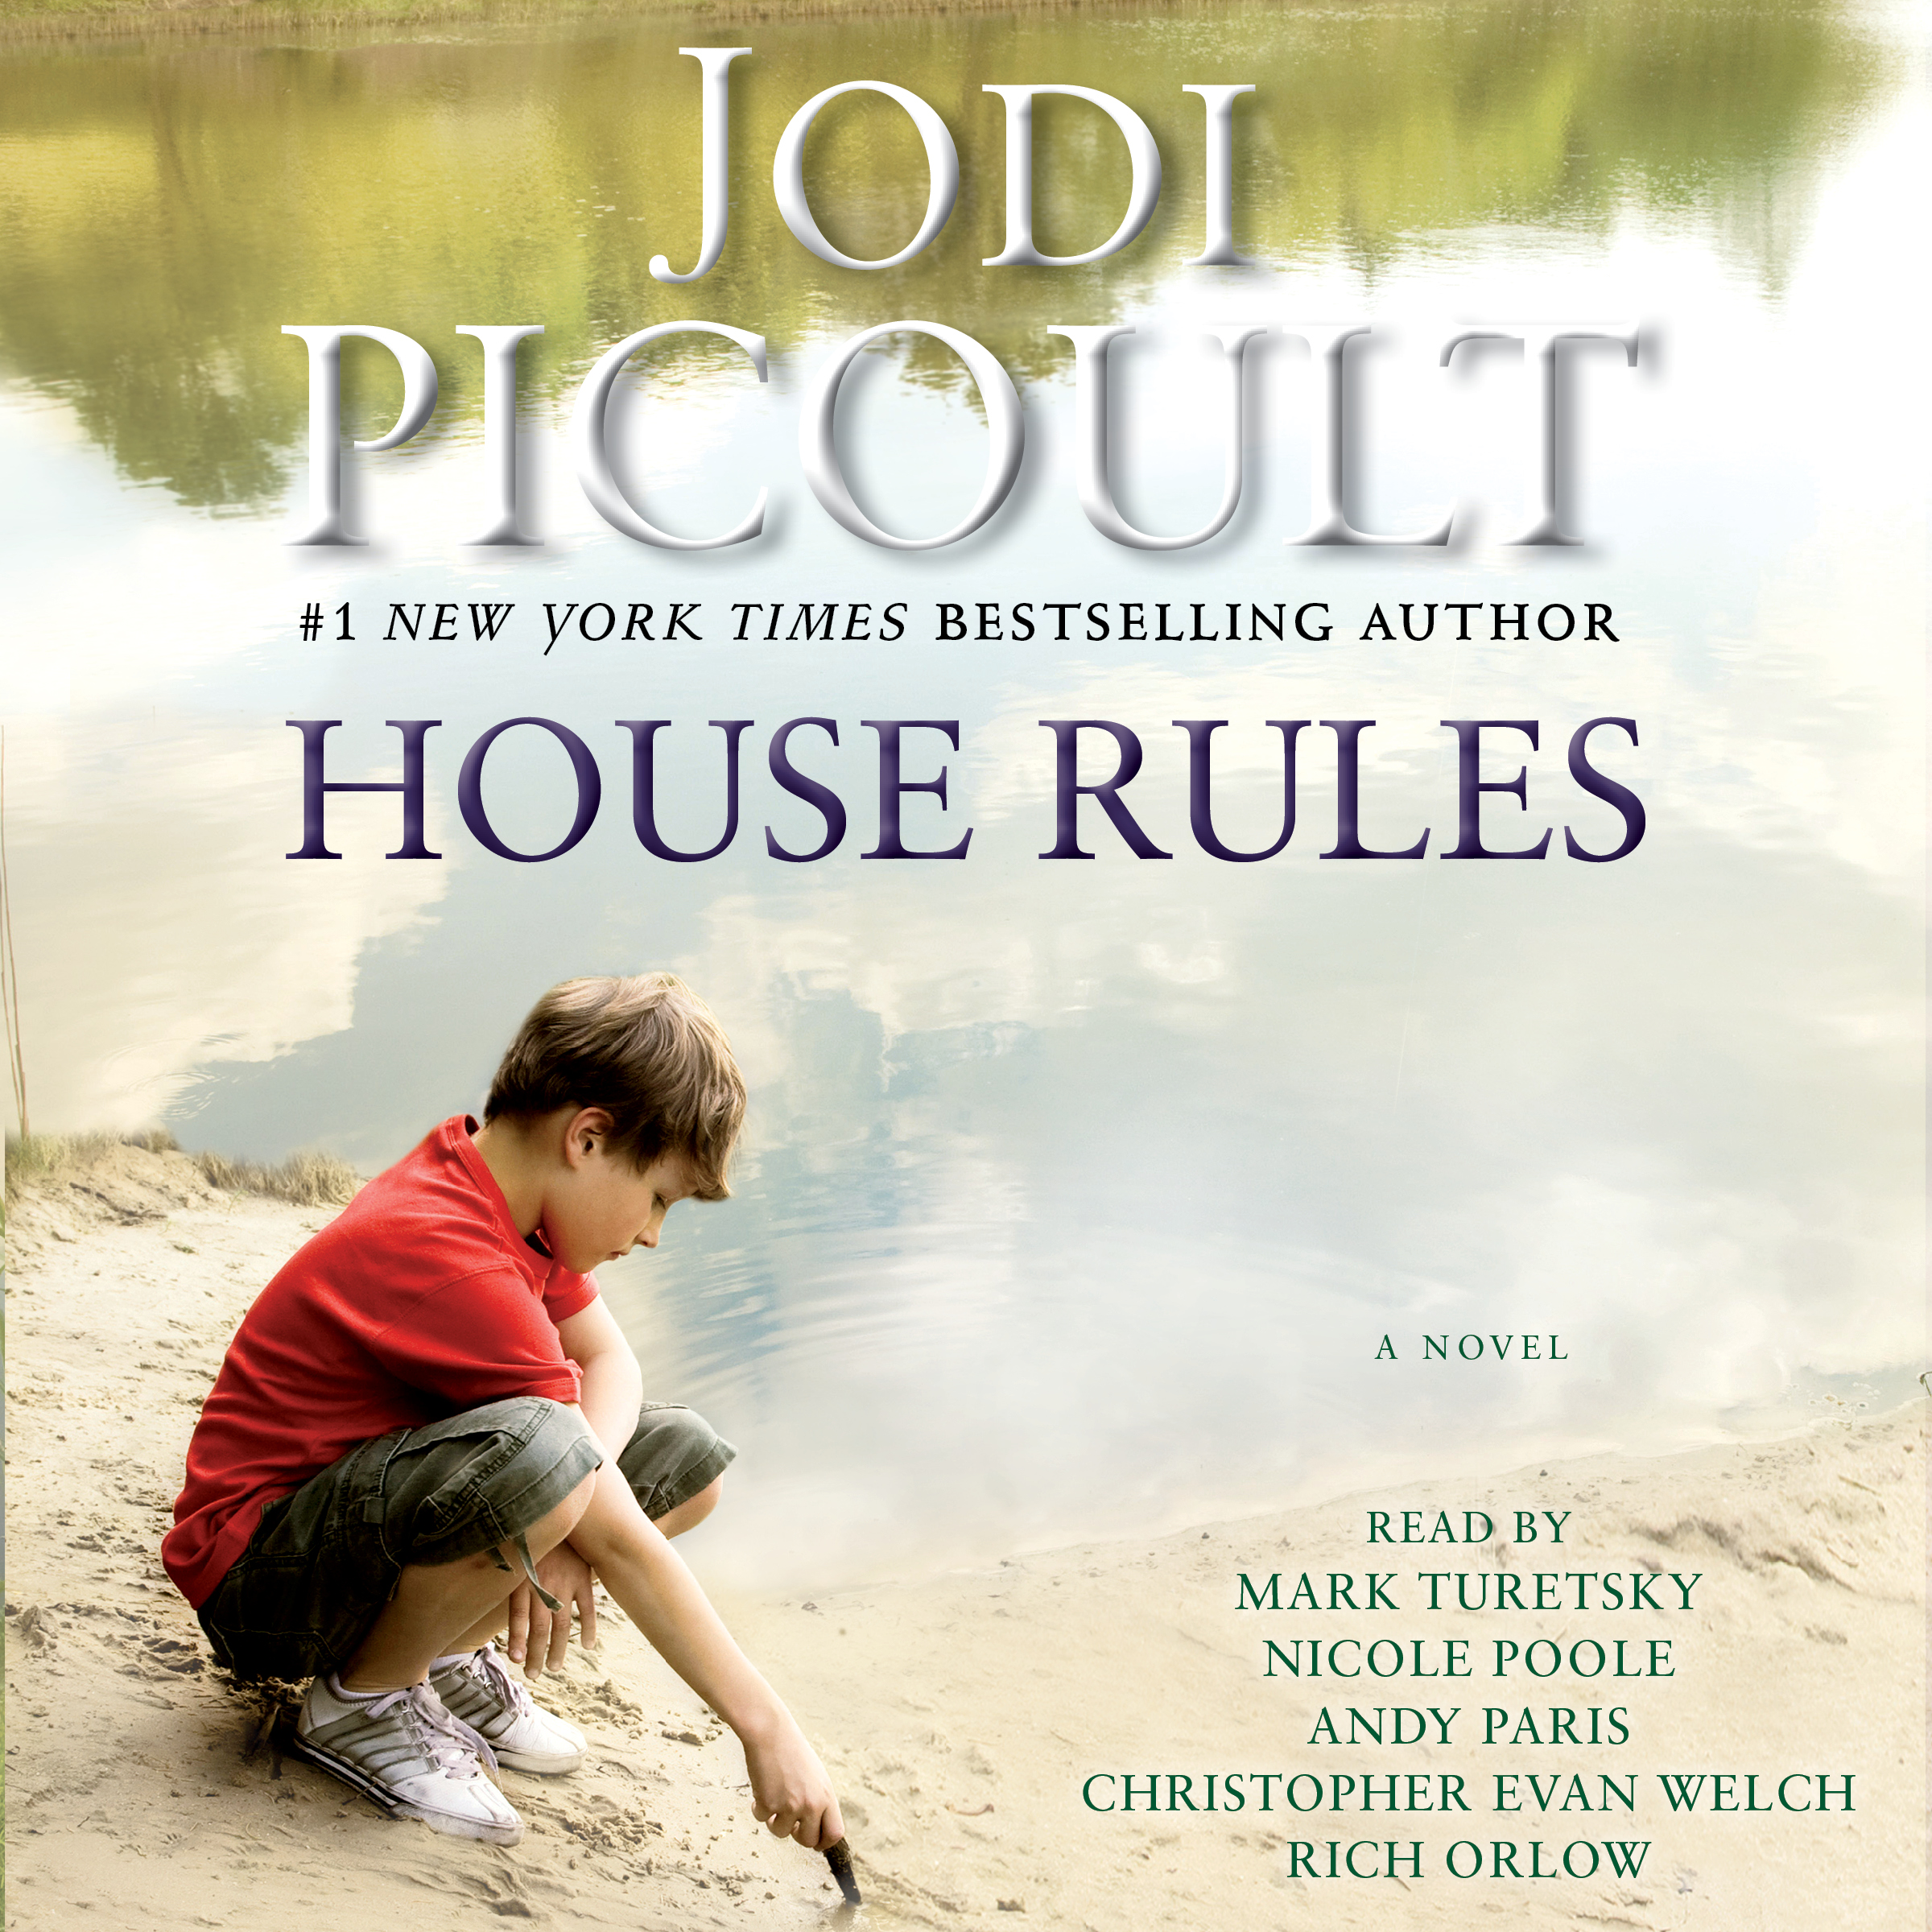 House Rules Audiobook by Jodi Picoult, Mark Turetsky, Rich